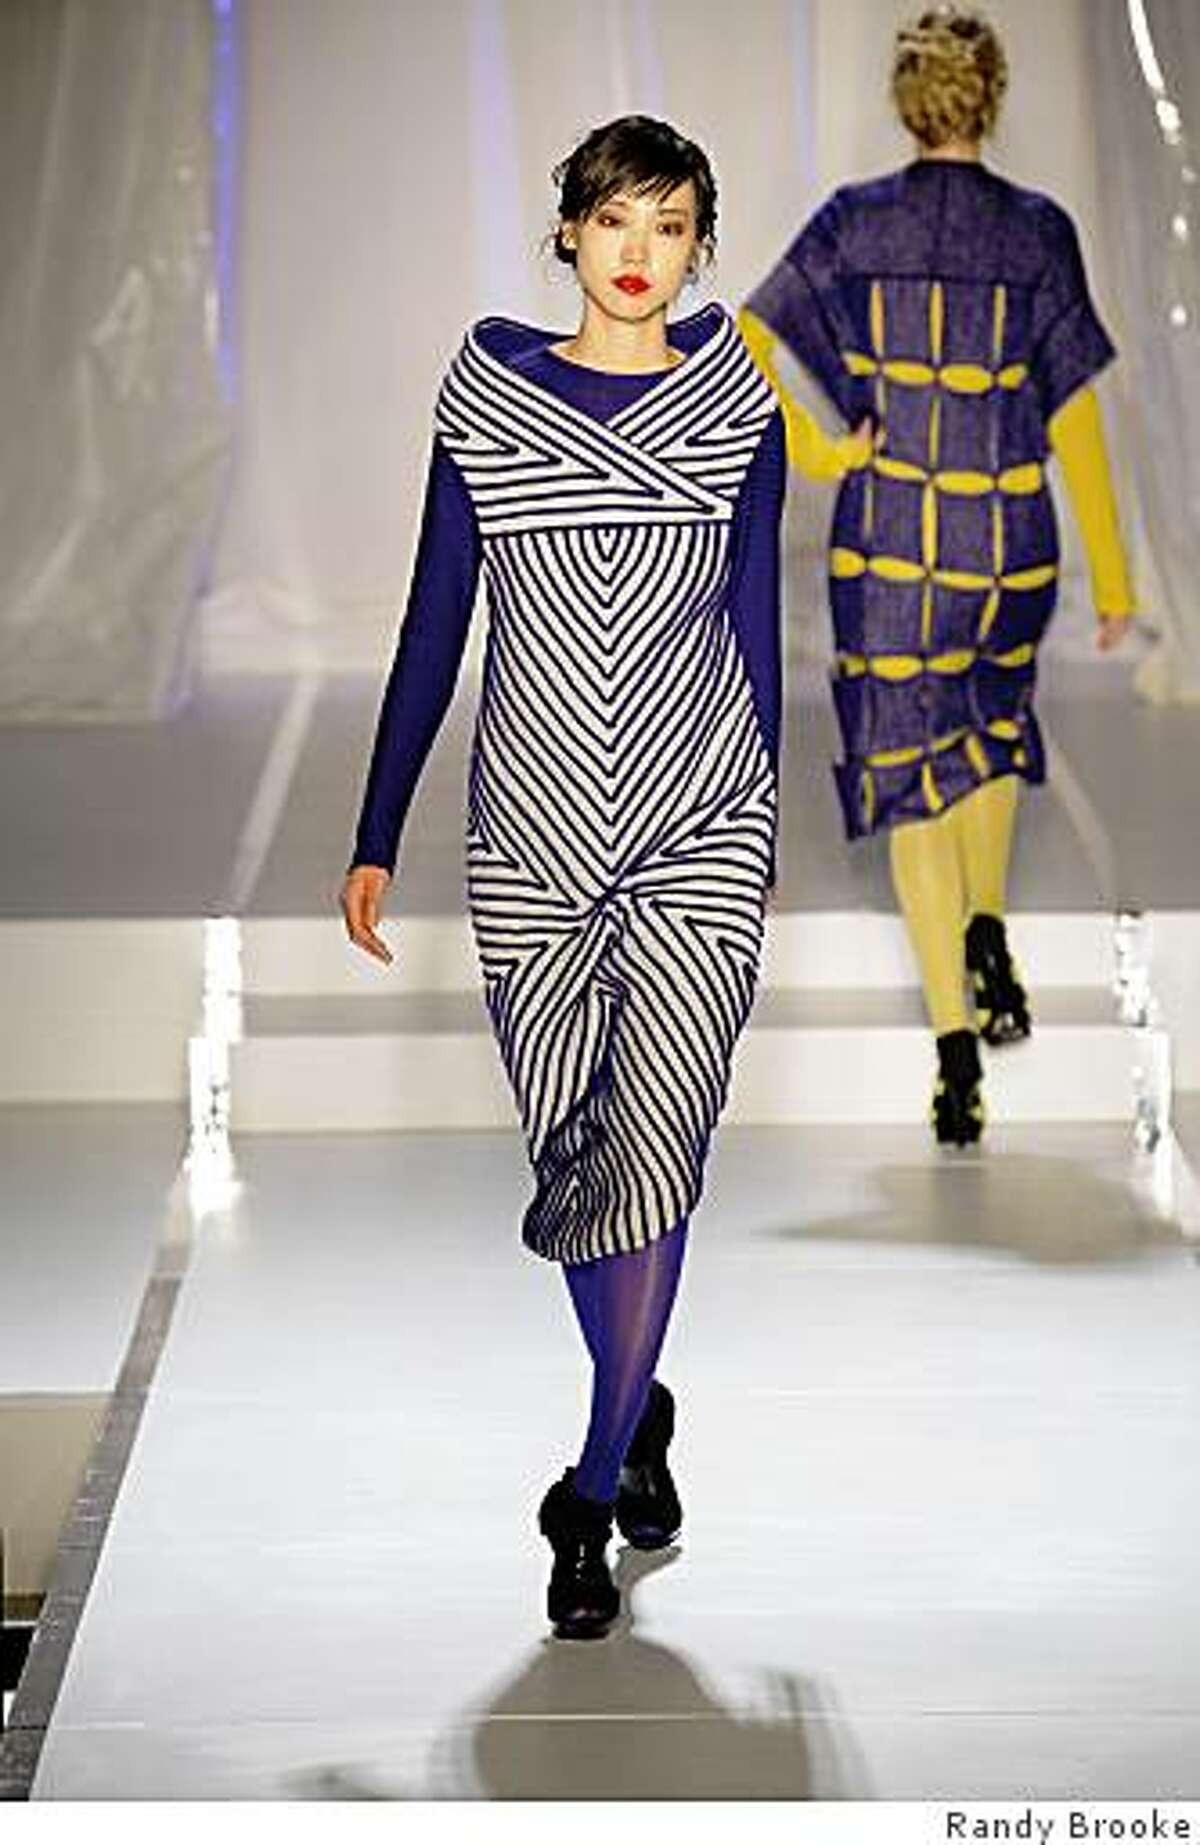 Jessican Bergstrom, a fashion and knitwear design student, showed her designs at the Academy of Art graduate fashion show in San Francisco on April 23.